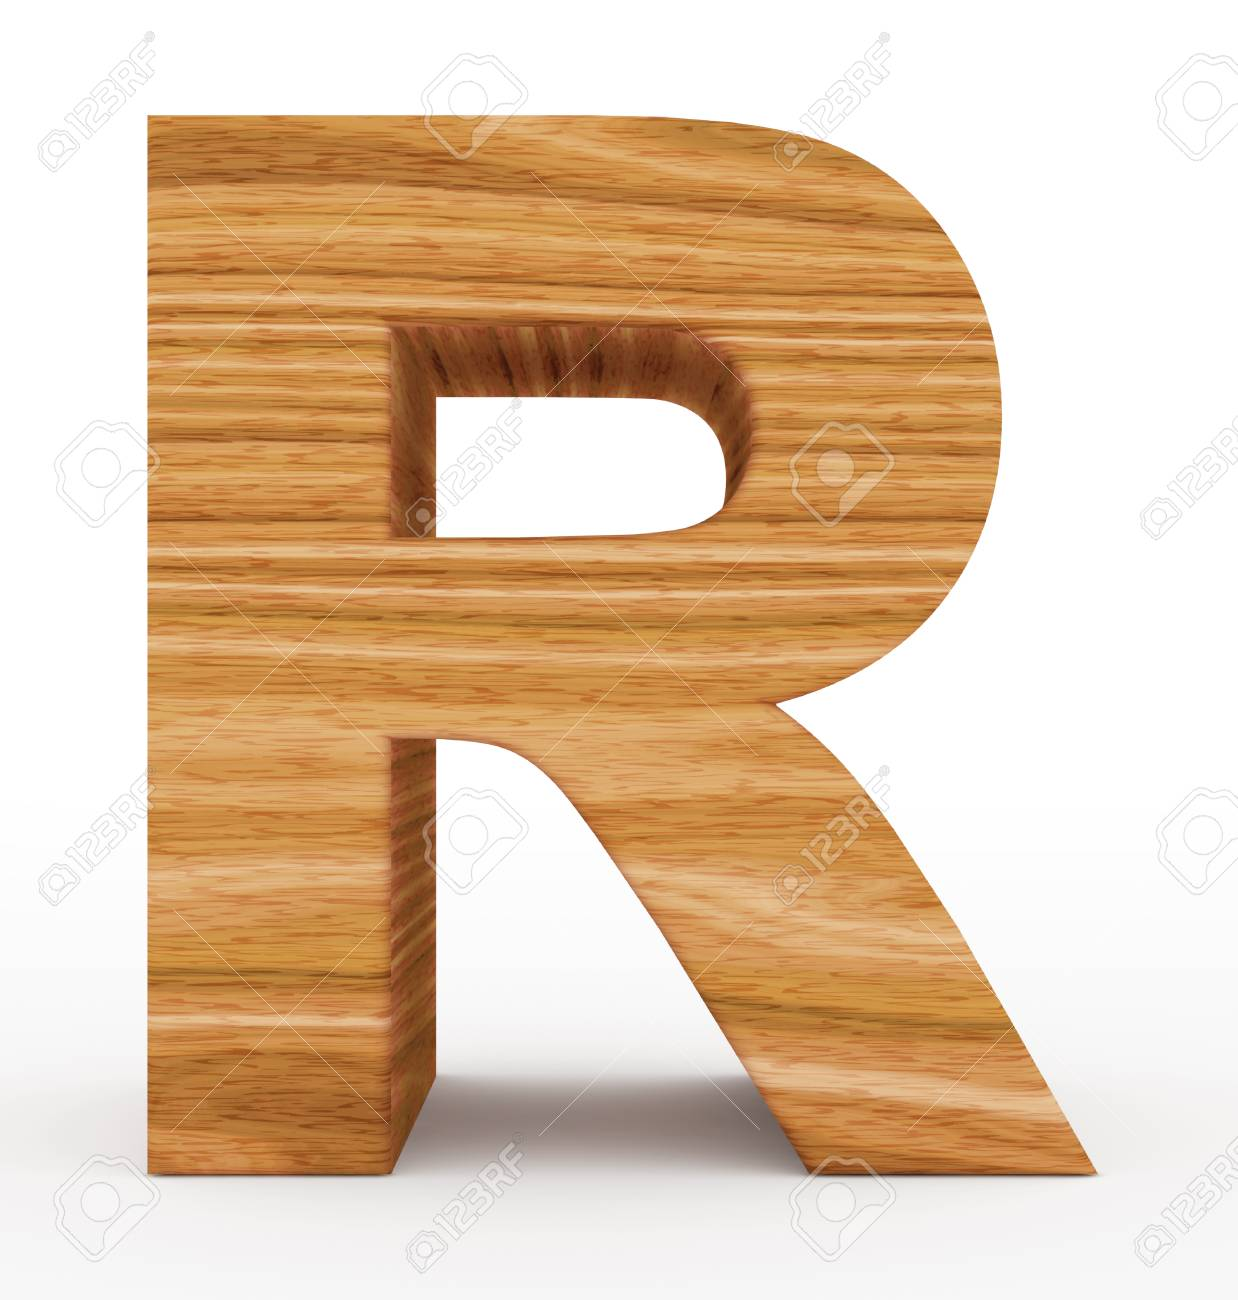 Letter r 3d wooden isolated on white 3d rendering stock photo letter r 3d wooden isolated on white 3d rendering stock photo 97856964 altavistaventures Image collections